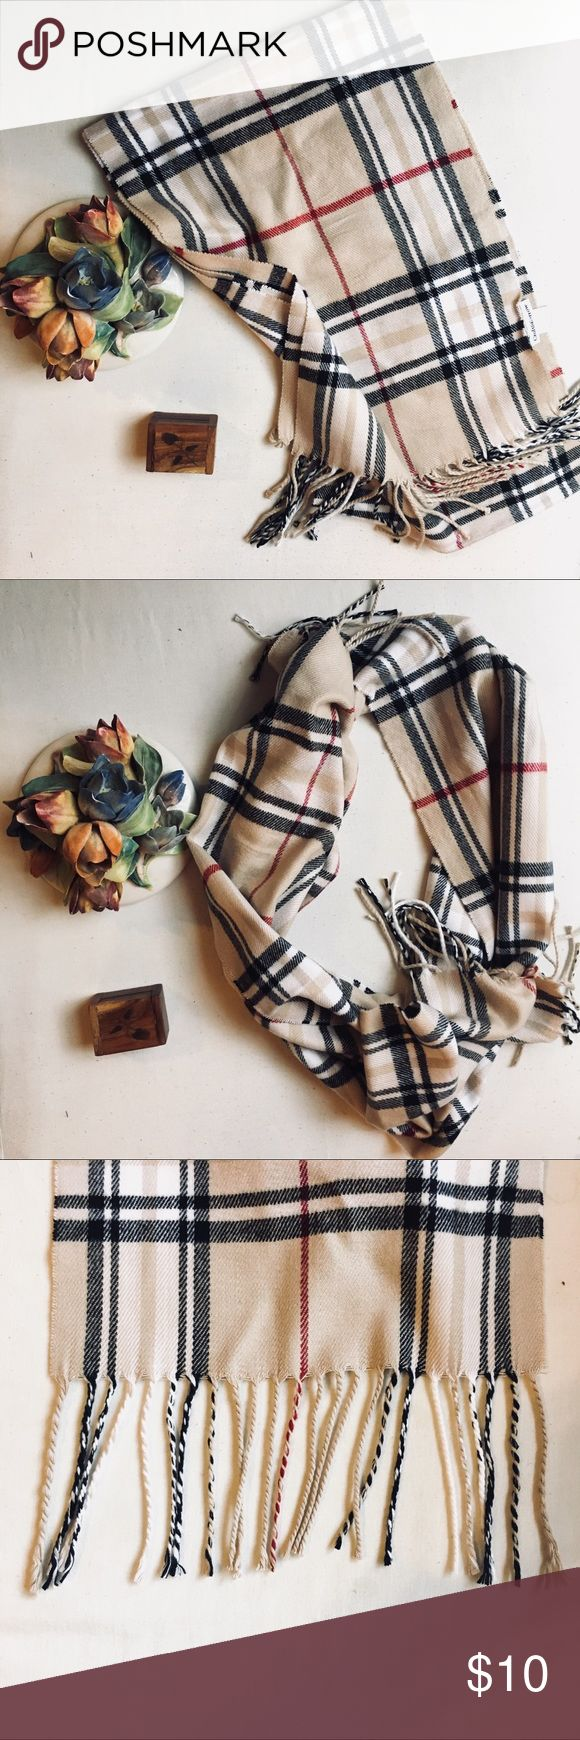 """🍨 NWOT Croft & Barrow Cream Plaid Scarf This cozy Croft & Barrow scarf will keep you warm while looking cute! Never worn, new without tags. Cute plaid design that's reminiscent of Burberry. 100% Acrylic. No trades please. Offers welcome.   Width: 10.5"""" Length: 64"""" Fringe length: 4.5"""" croft & barrow Accessories Scarves & Wraps"""